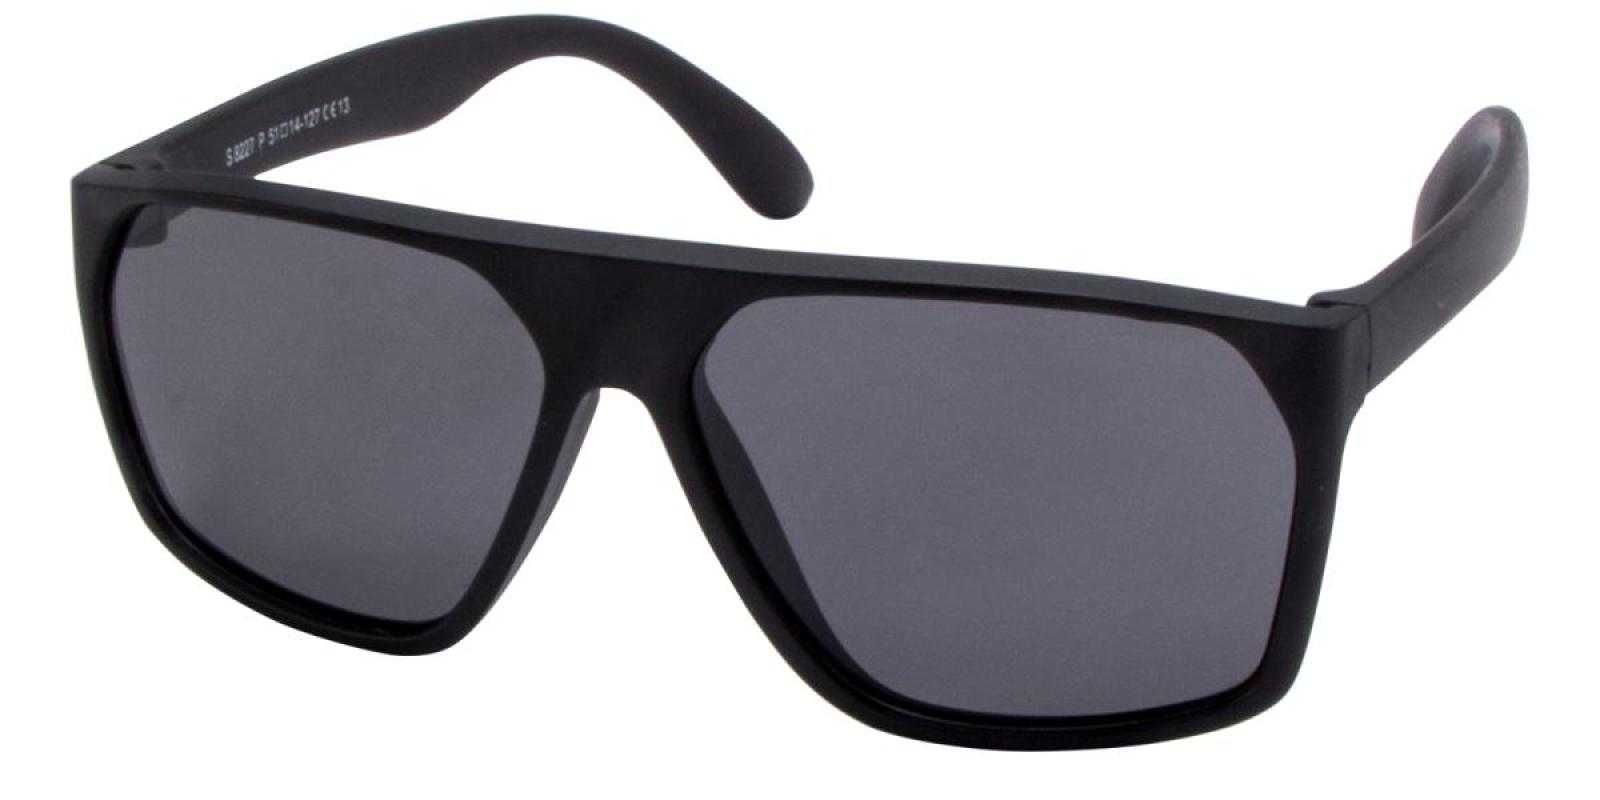 Blackore-Black-Geometric-TR-Sunglasses-additional1